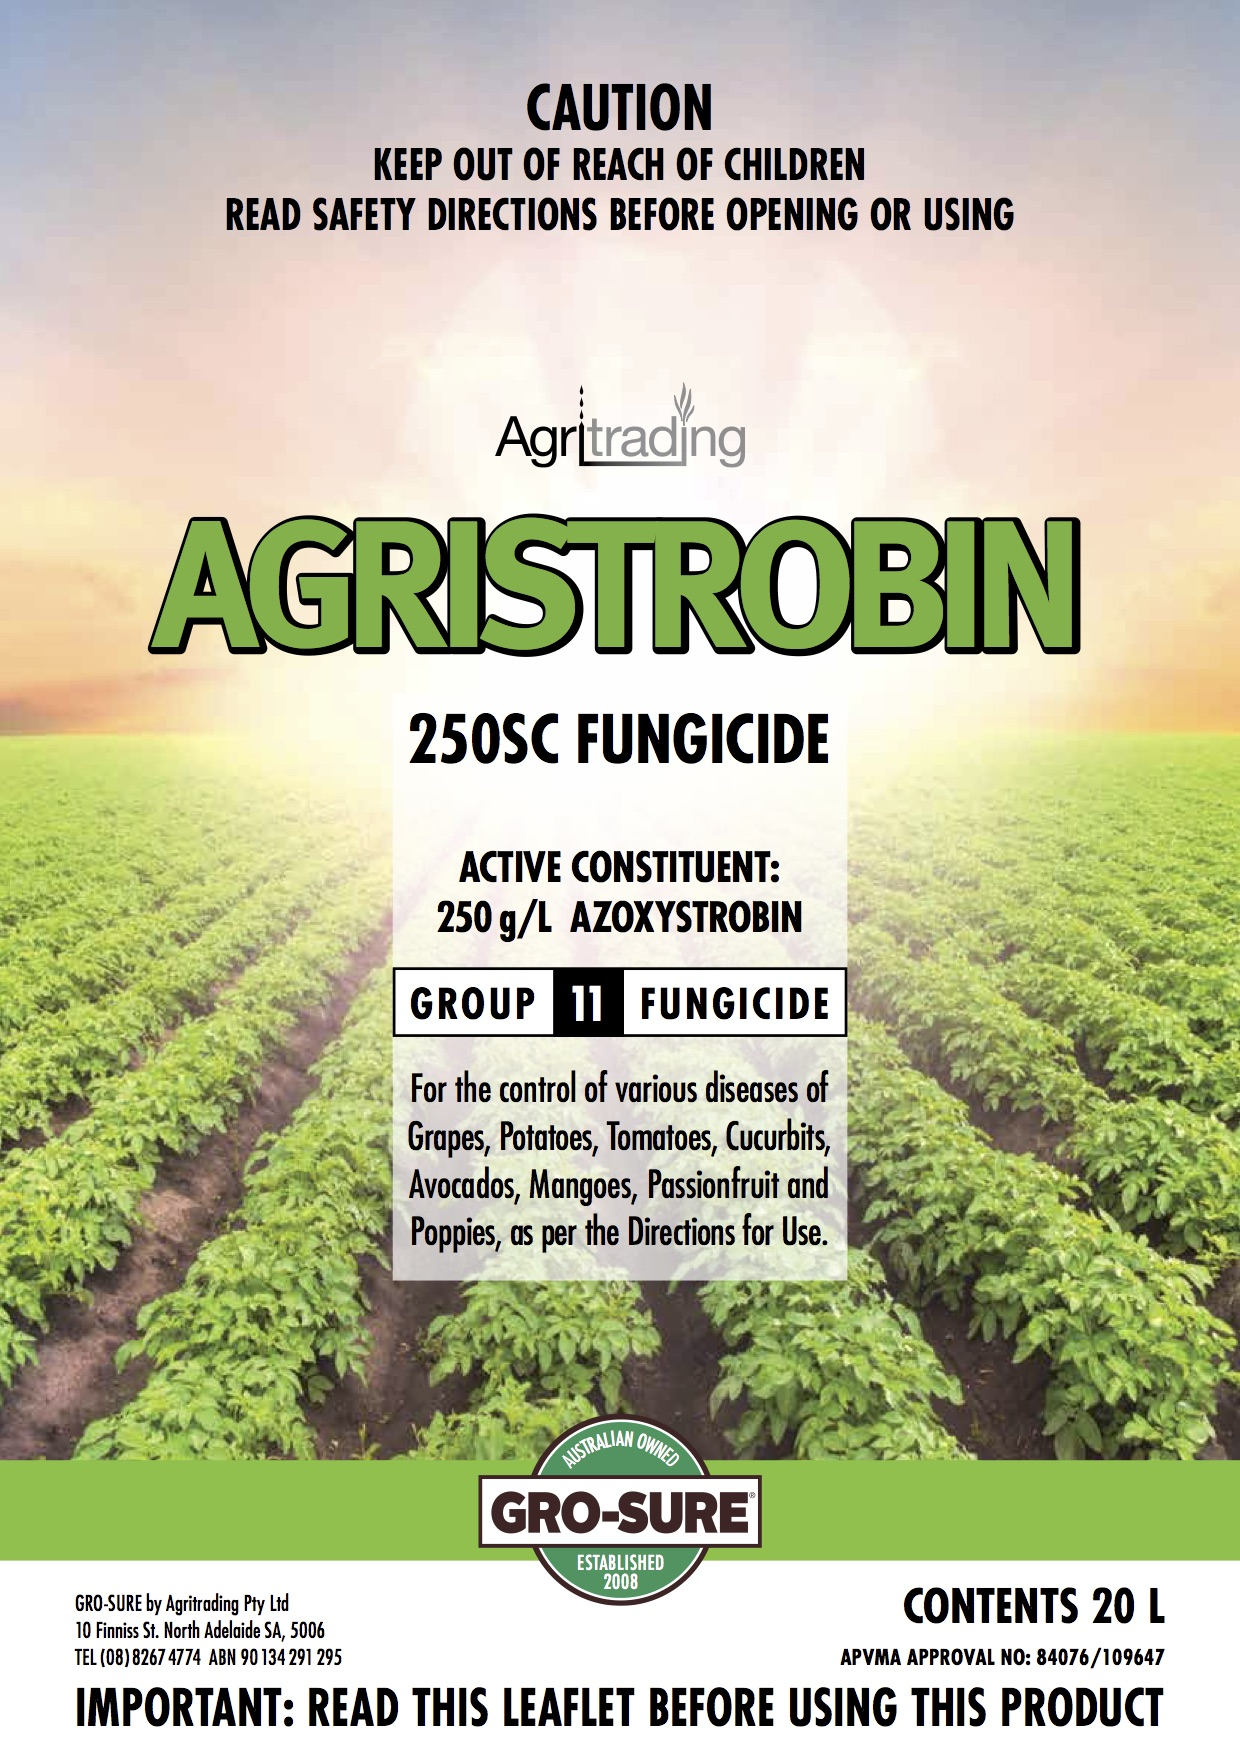 Agristrobin Web Label copy.jpg